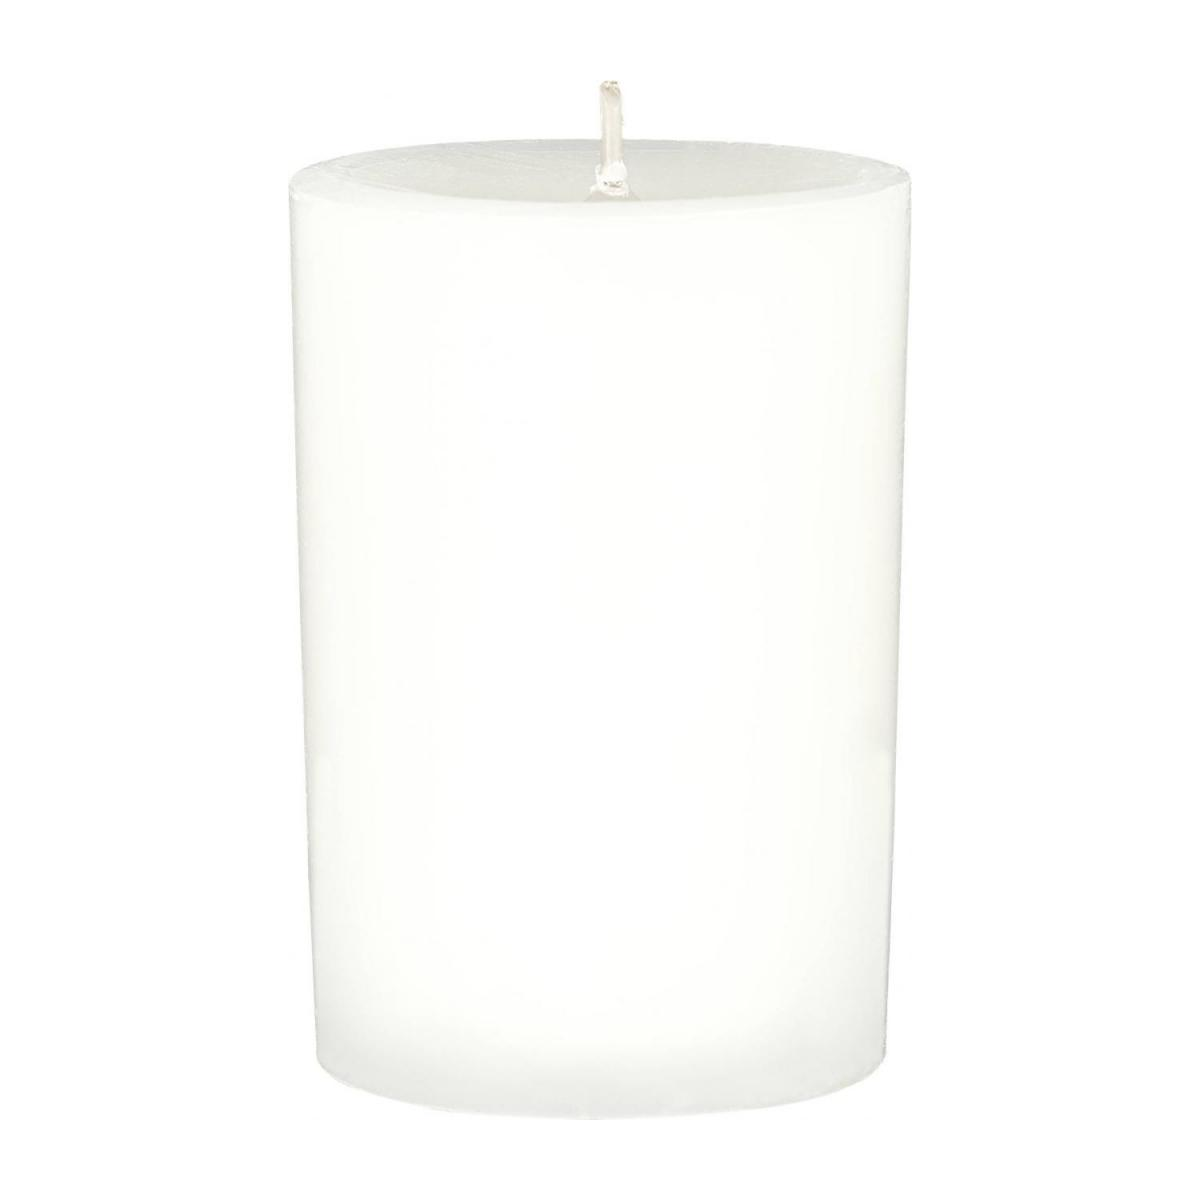 Refill for 2 medium Basil scented candles, 2 x 300 g n°3